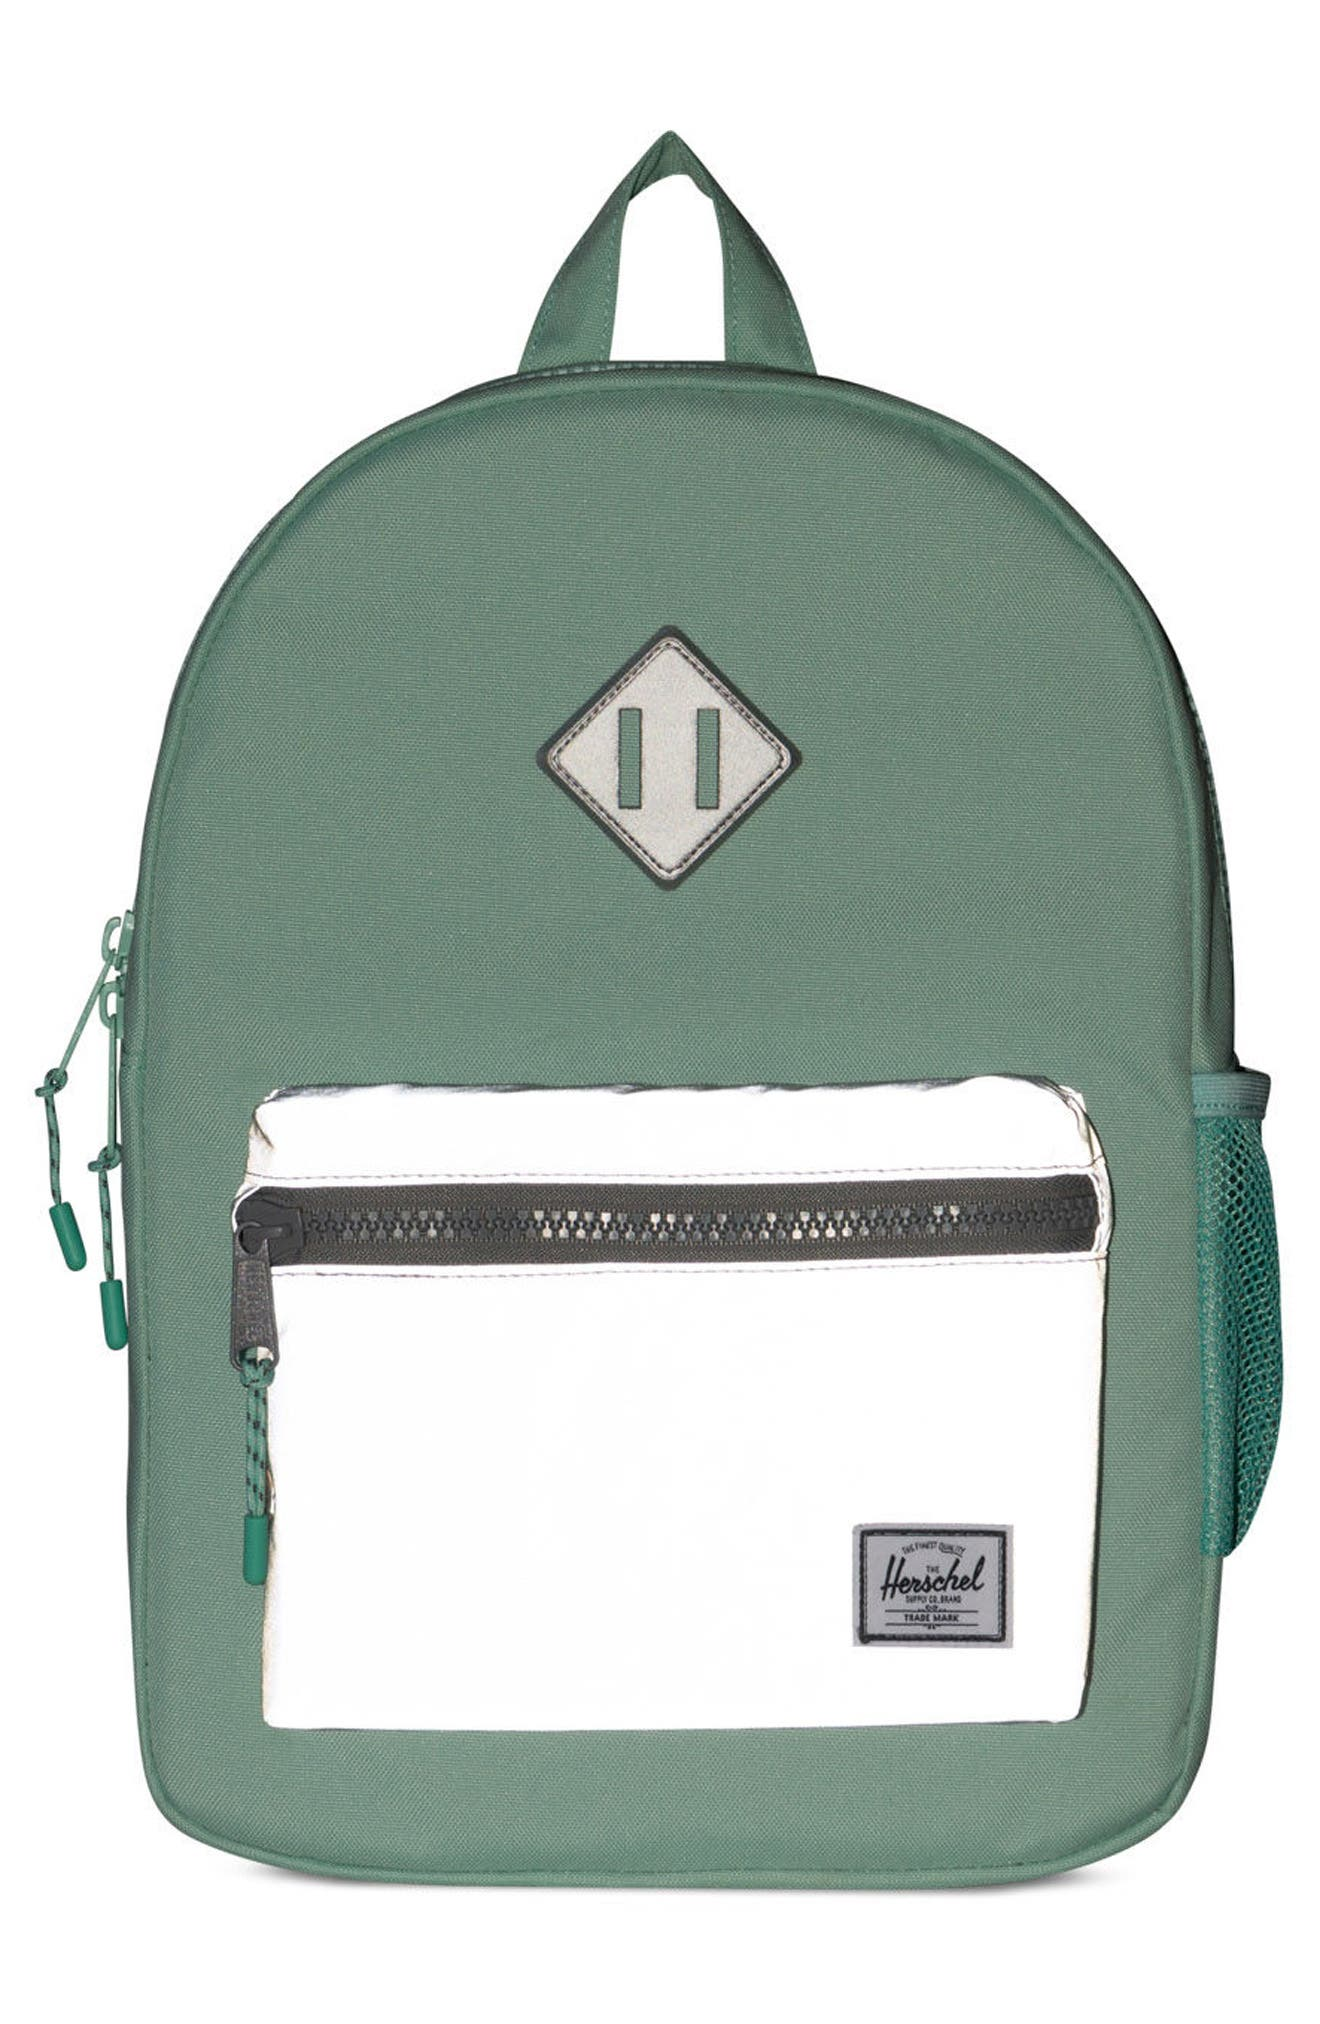 Heritage Backpack,                             Alternate thumbnail 2, color,                             401